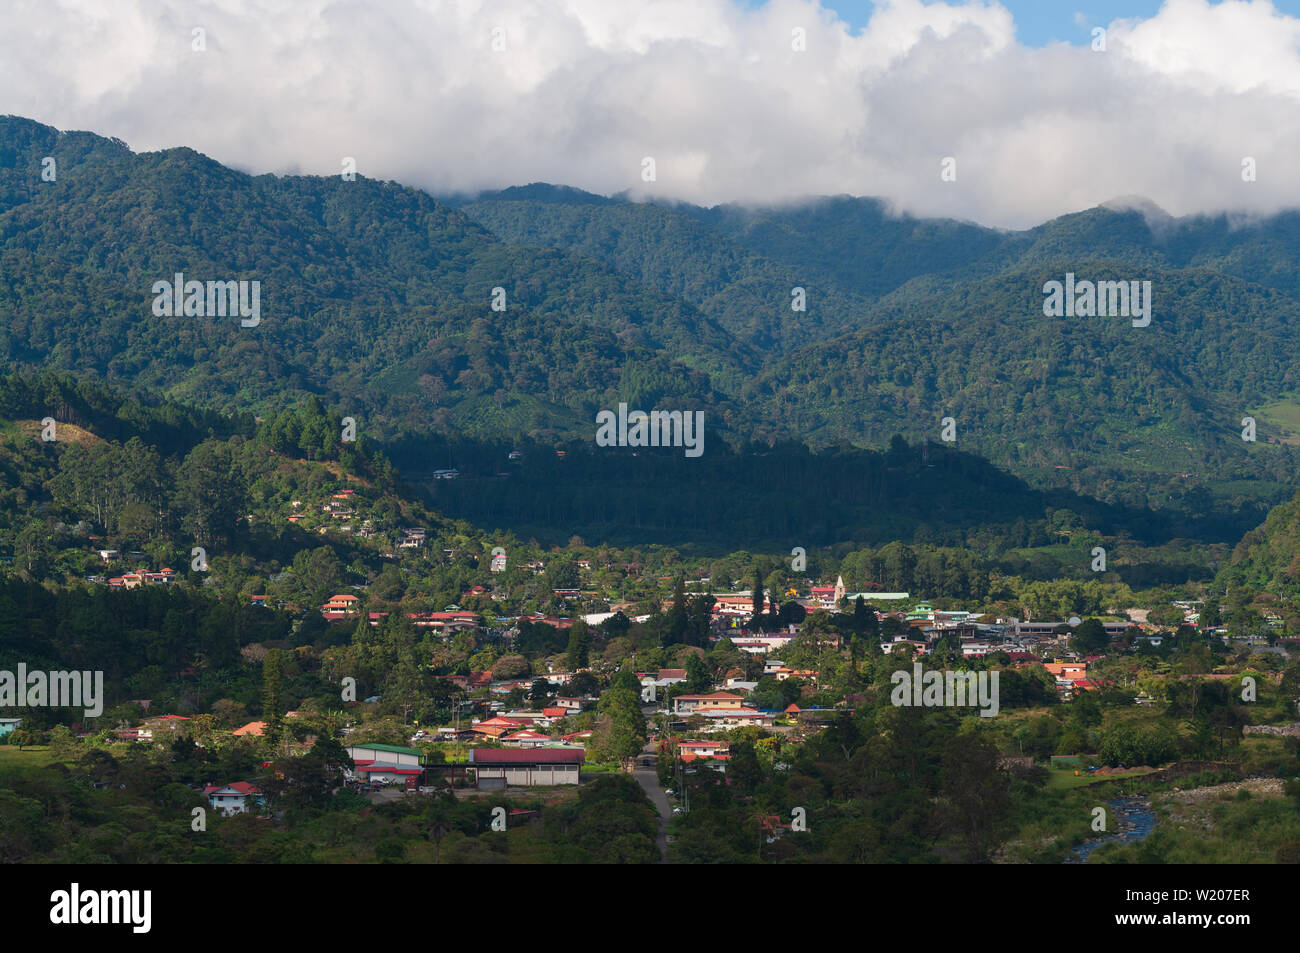 Image showing Boquete, a small town in the Chiriqui province of Panama. Boquete is known for its production of fine coffee. Stock Photo